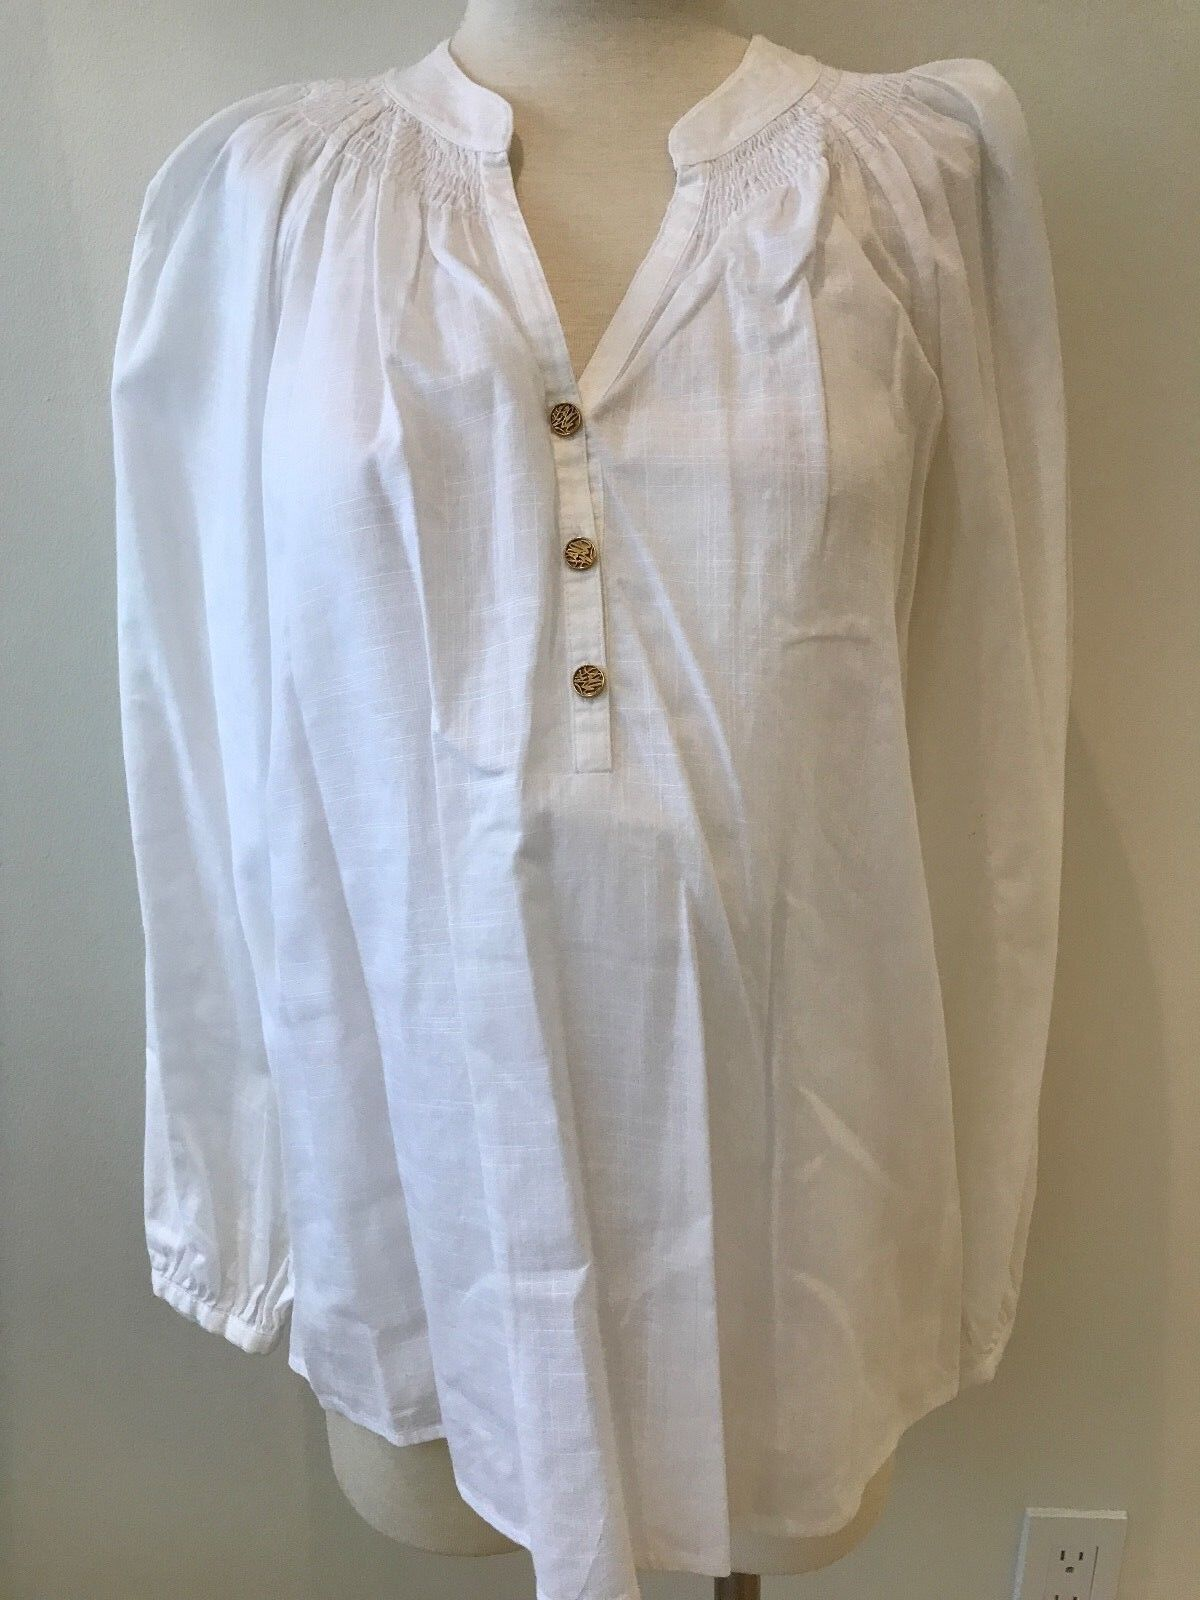 Lilly Pulitzer Elsa Cotton Weiß Popover Top EUC 6 Long sleeves Gold Buttons